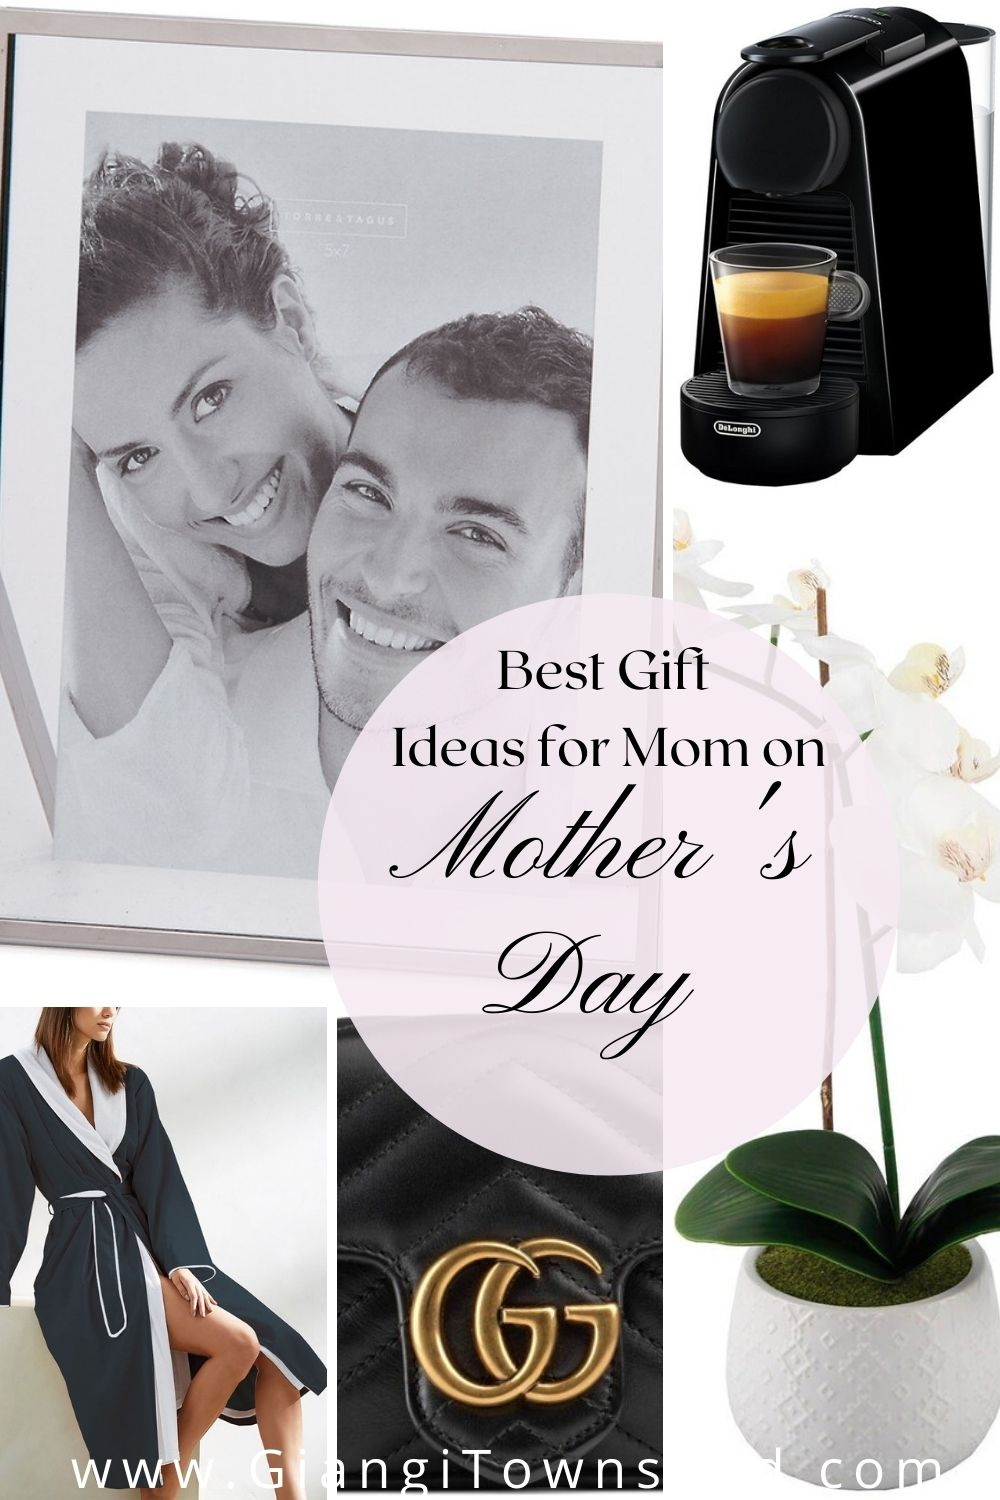 Mother's Day Best Gift Idea, Part 2